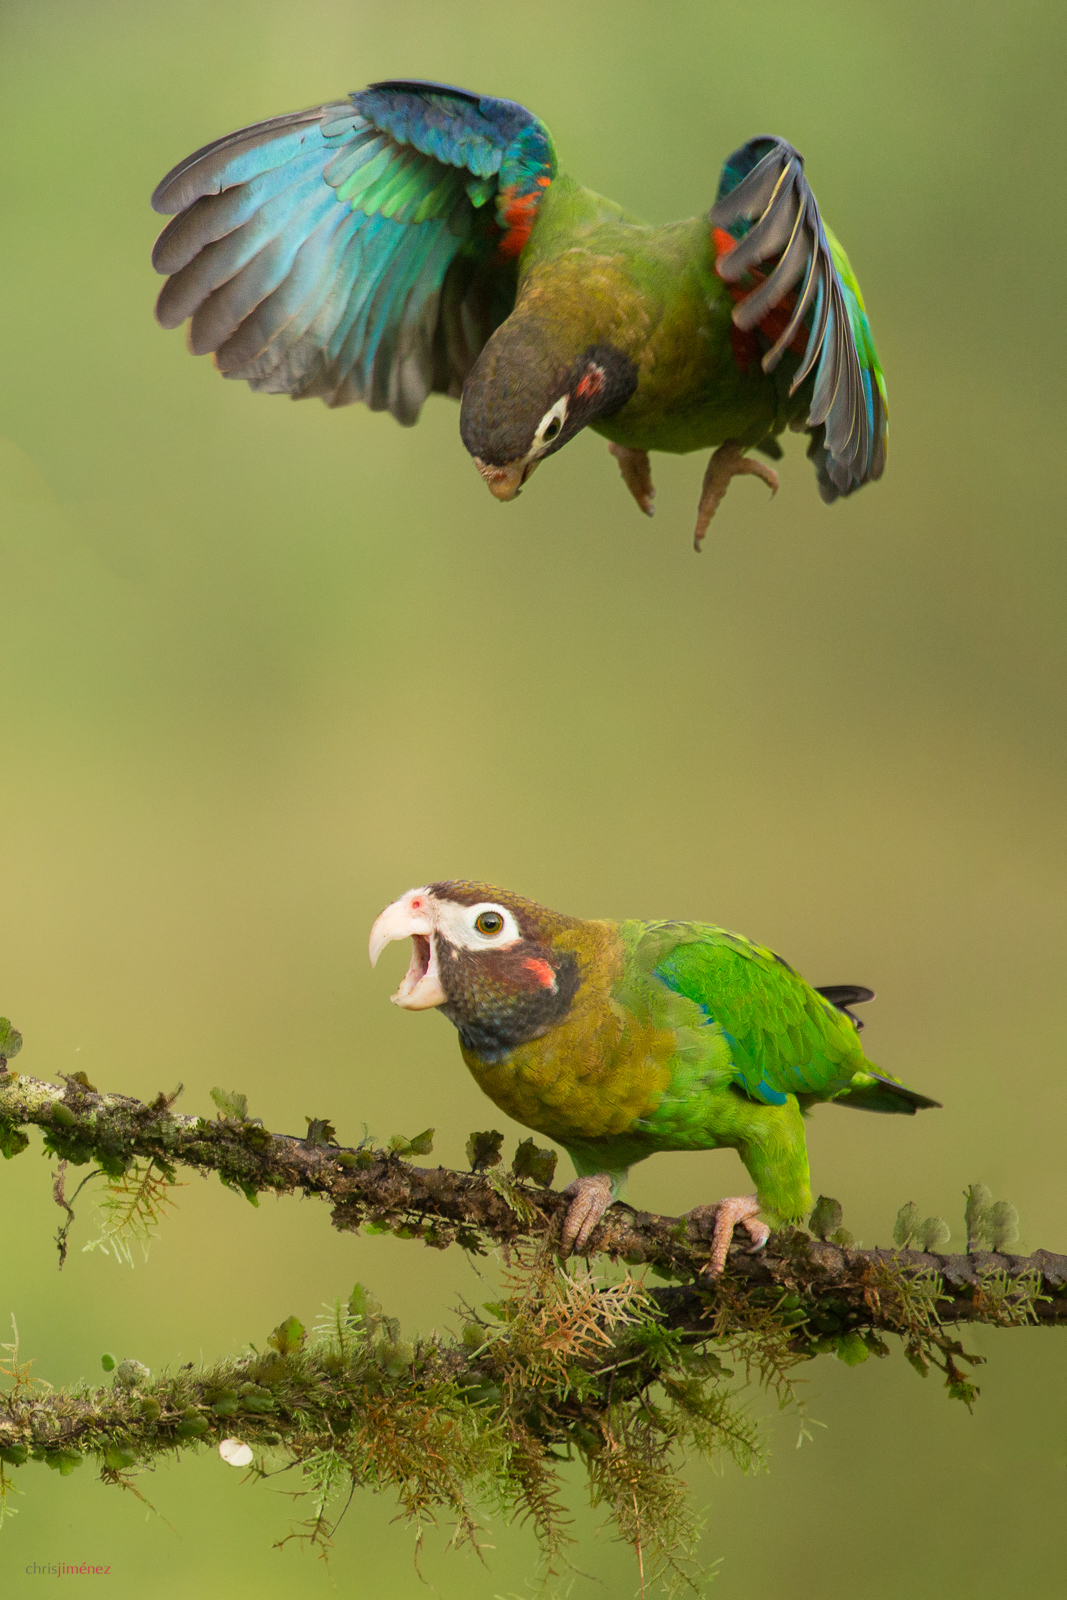 Brown-hooded Parrot (Pyrilia haematotis) in flight at the low lands of Costa Rica